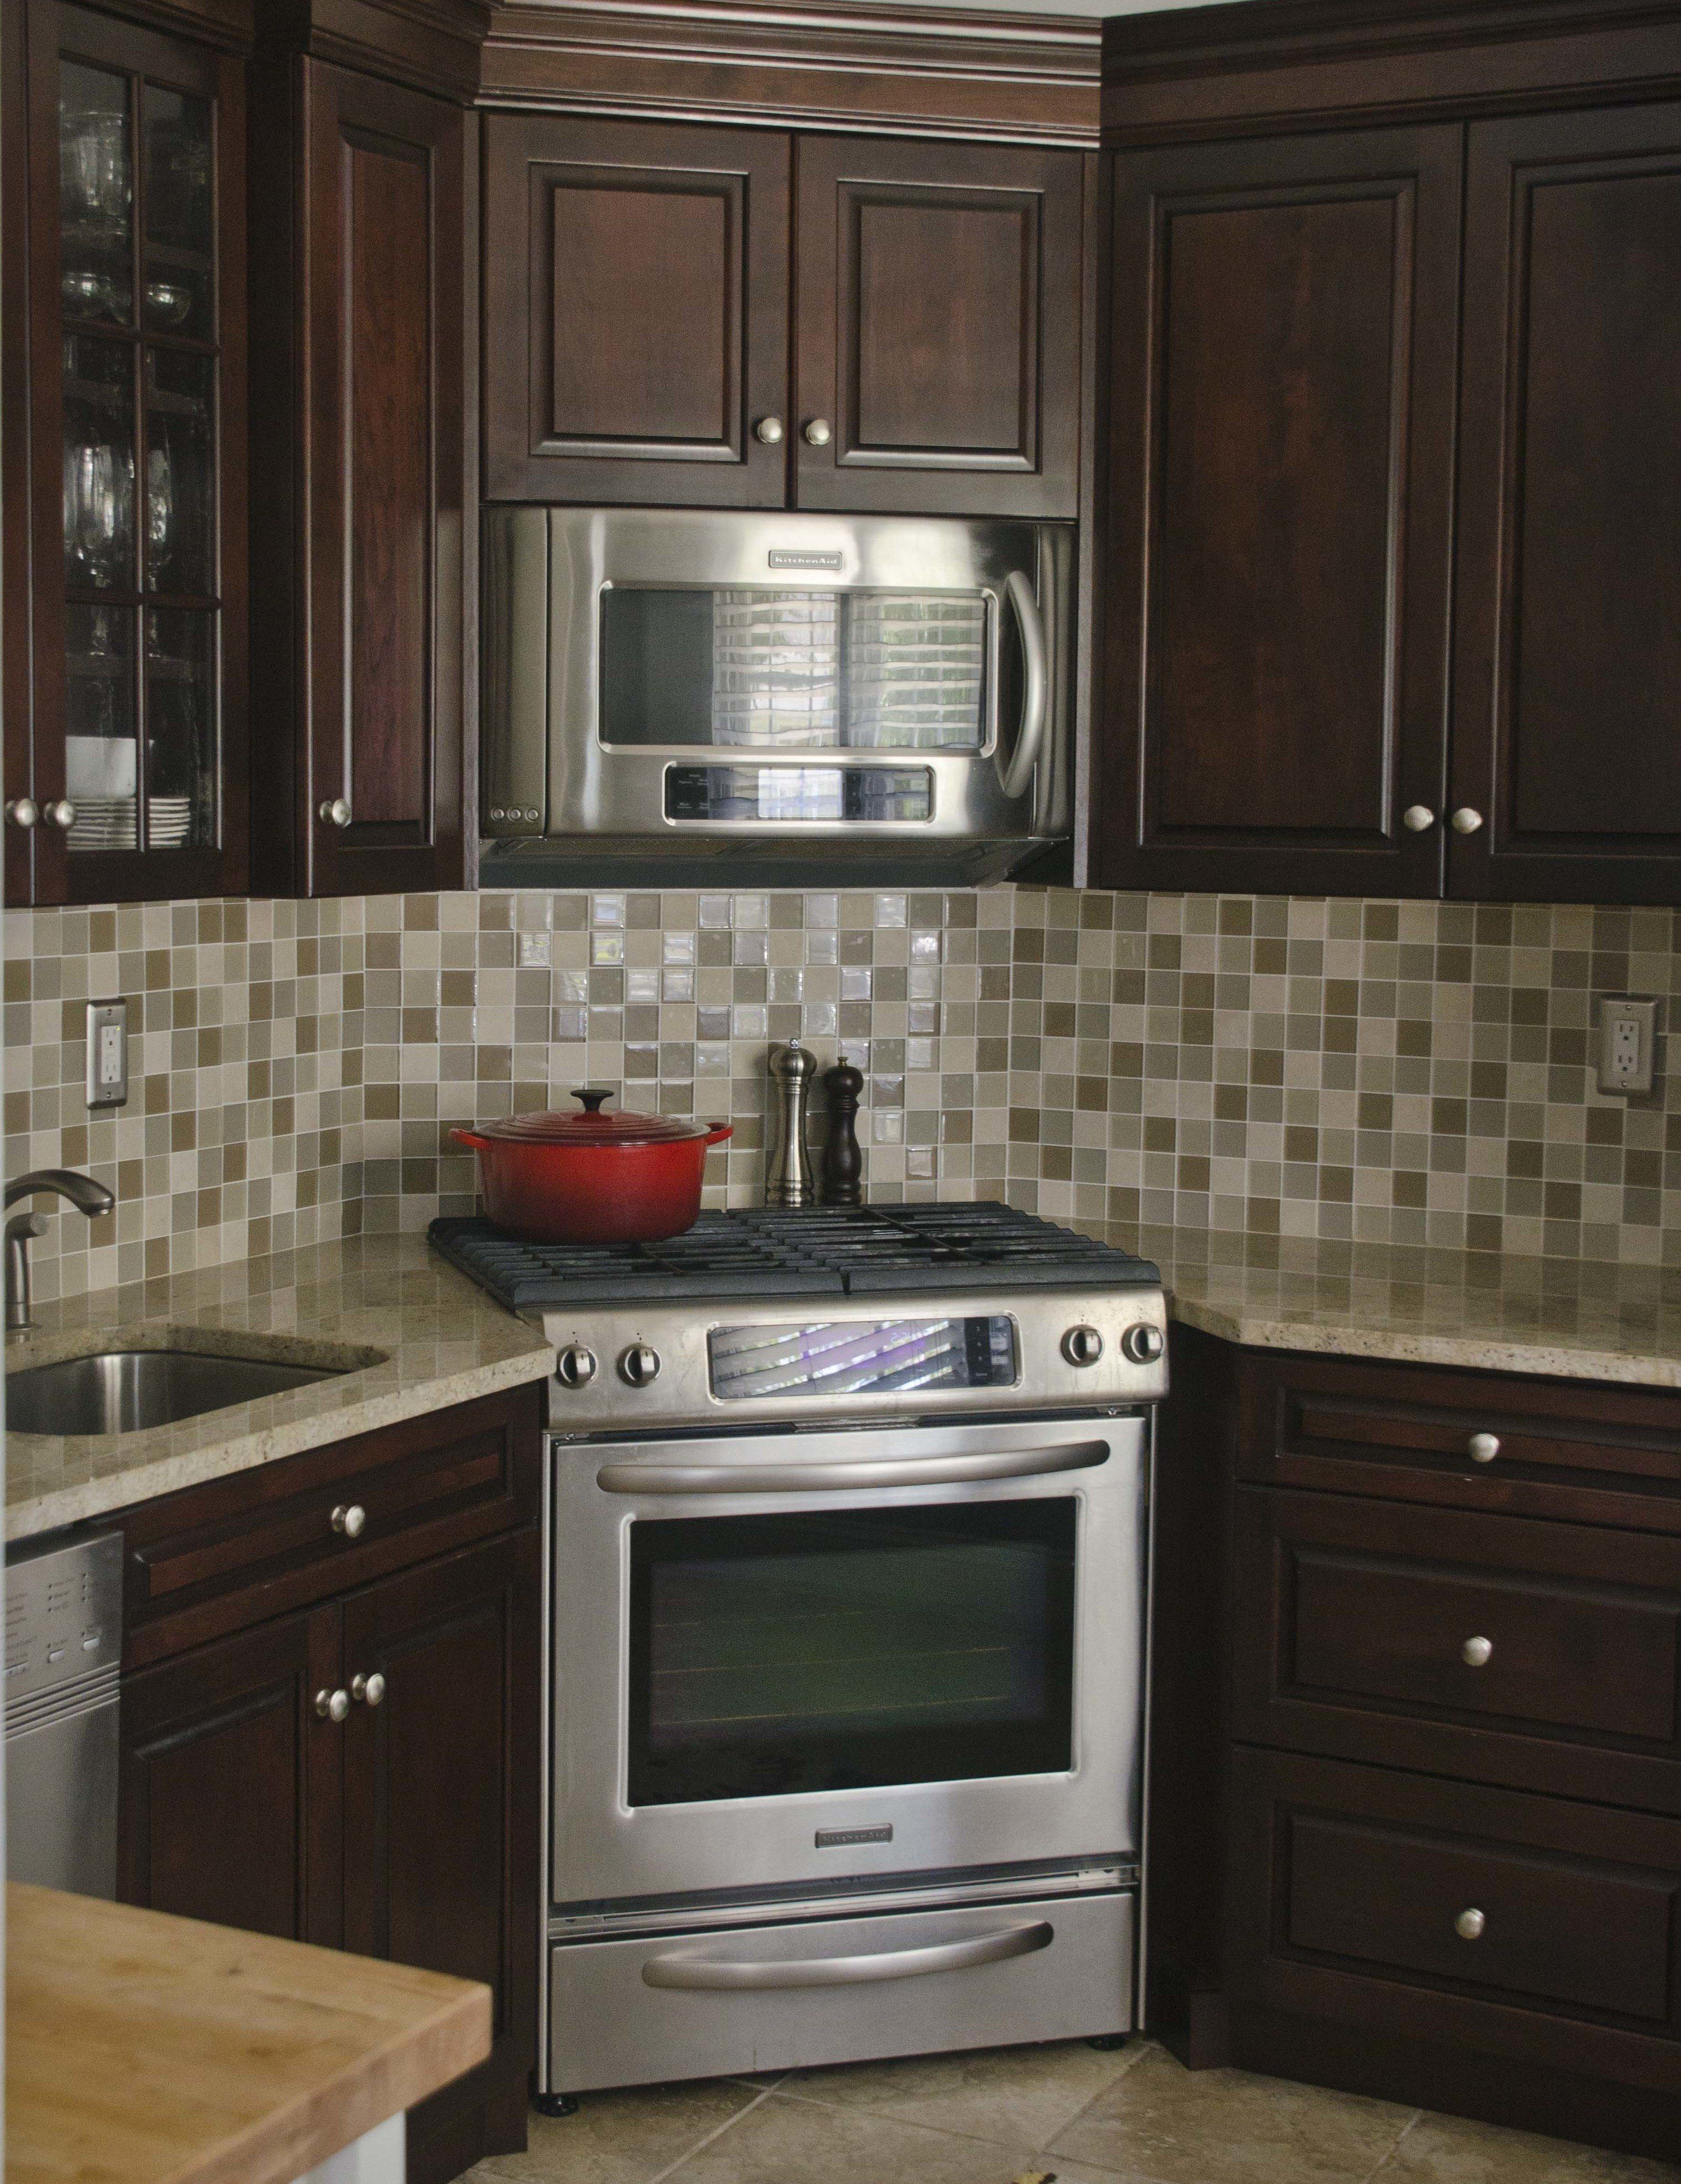 kitchen design and build. View kitchen remodel design ideas from the remodeling experts at Trade Mark Design  and Build